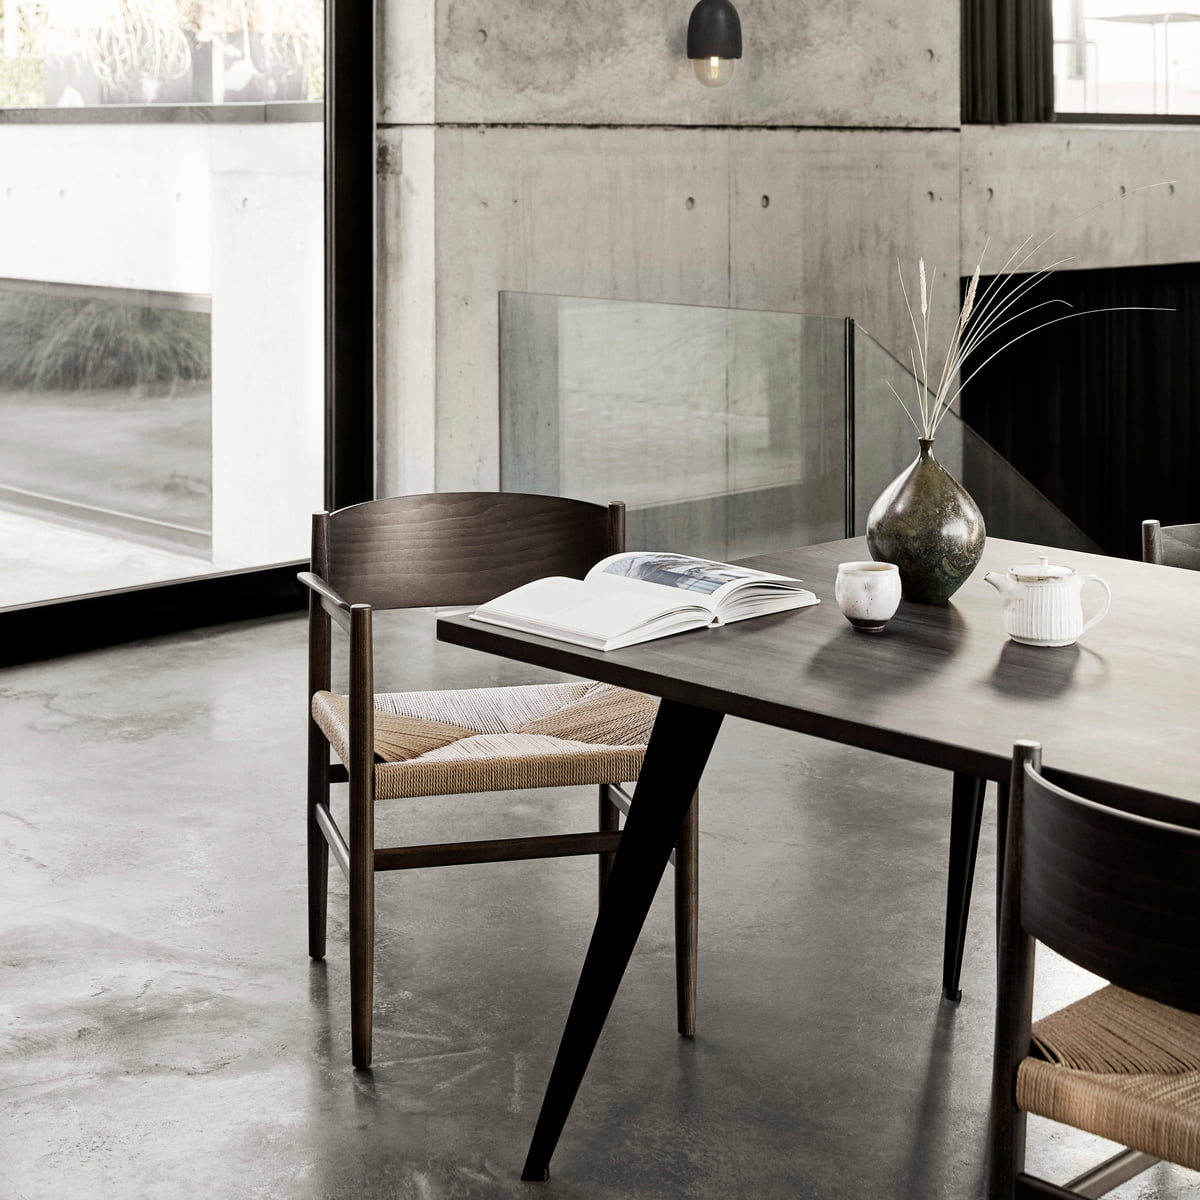 Shop Dining Tables: Lignia Dining Table By Mater In The Shop